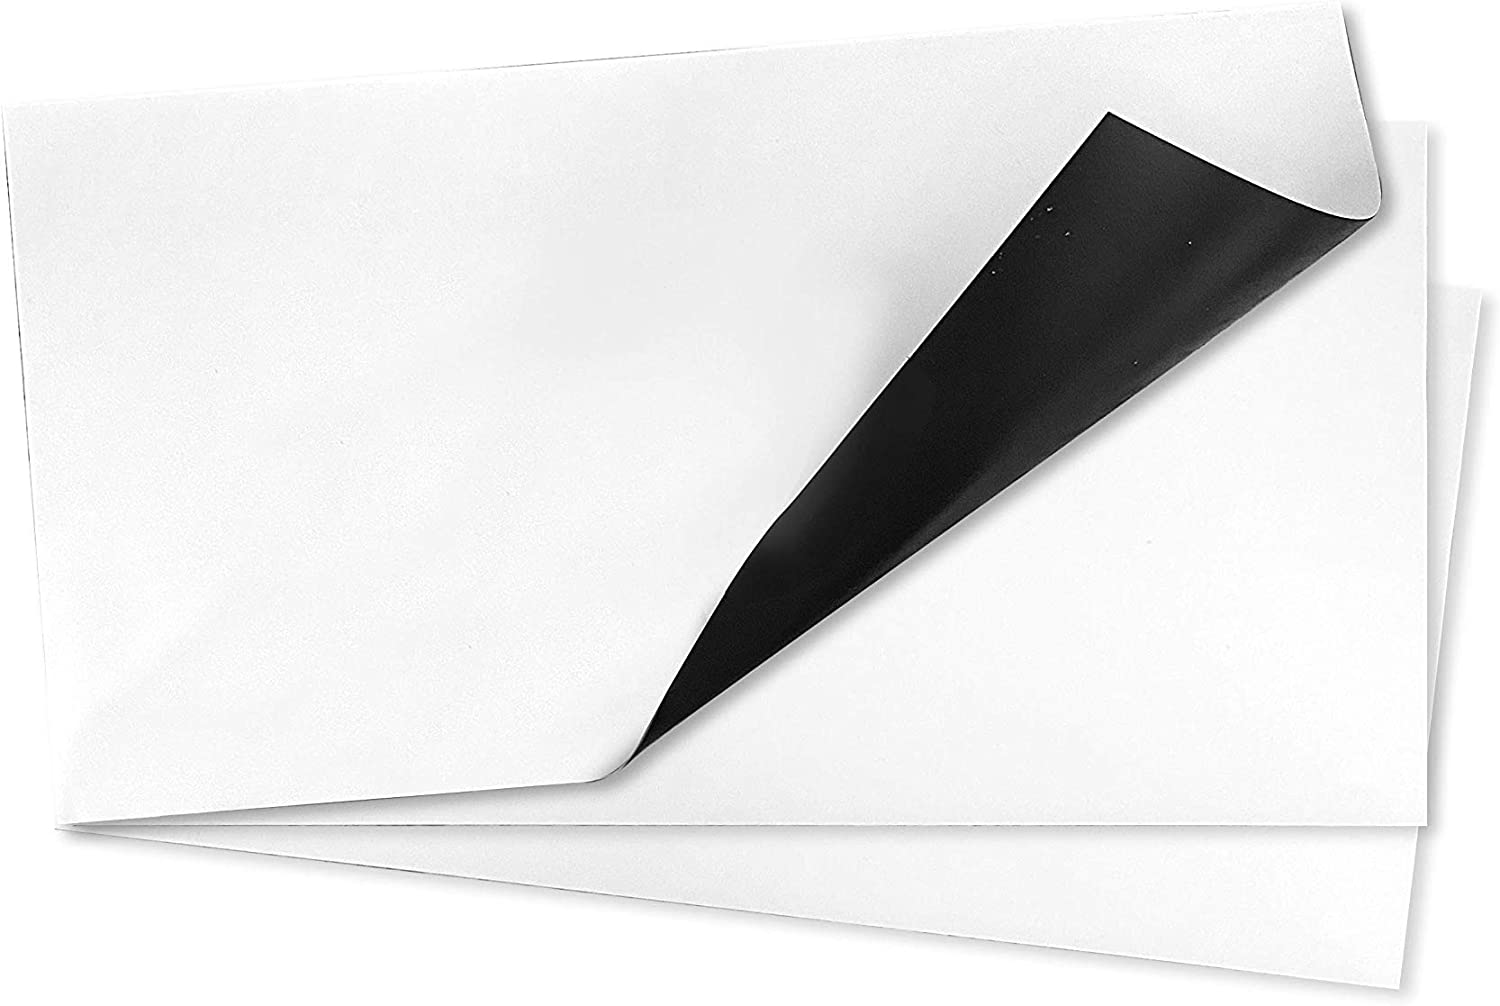 FilterWow Pack of 3 White Flexible, Paintable & Trimmable Magnetic Vent Covers for Home, Garage, RV Or Other Use - Original Size 15 X 8